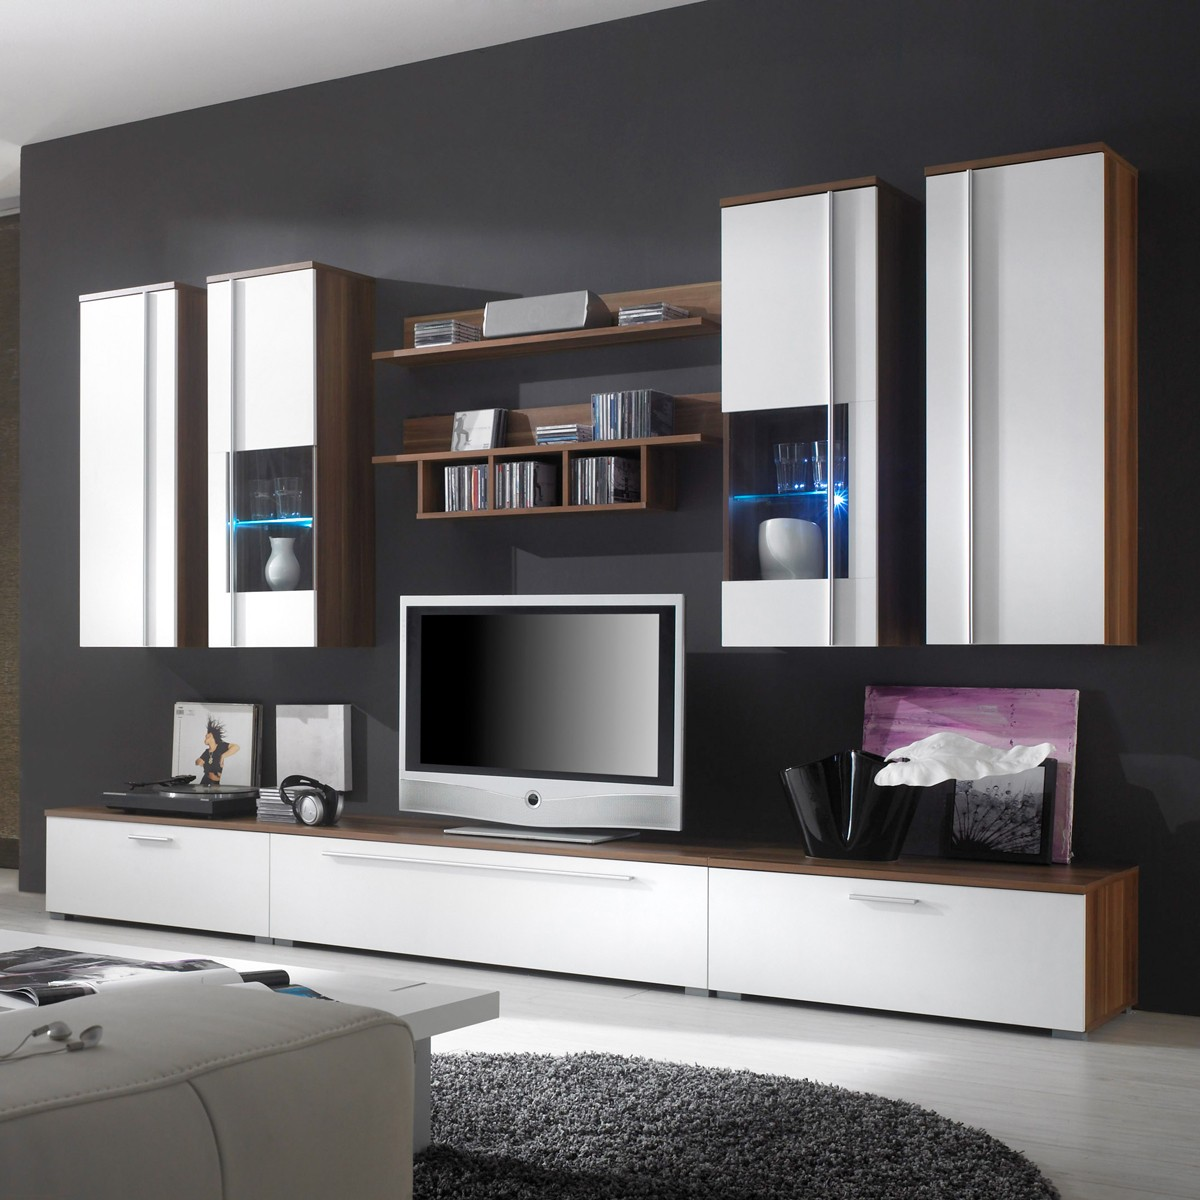 wohnwand anbauwand schrankwand bella in nussbaum. Black Bedroom Furniture Sets. Home Design Ideas